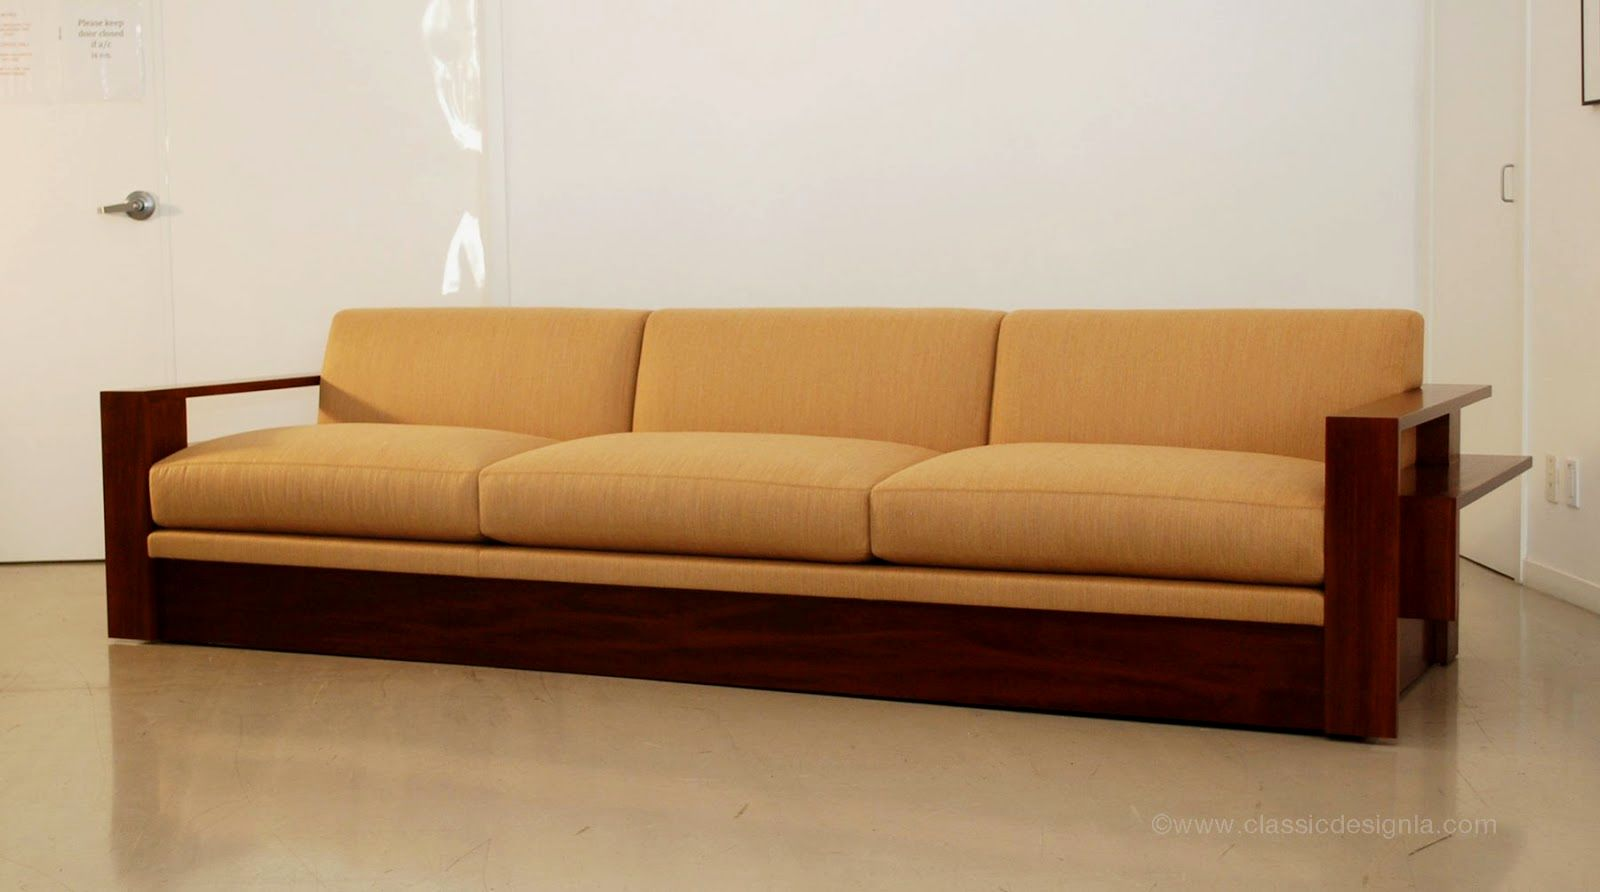 contemporary low back sofa construction-Amazing Low Back sofa Ideas